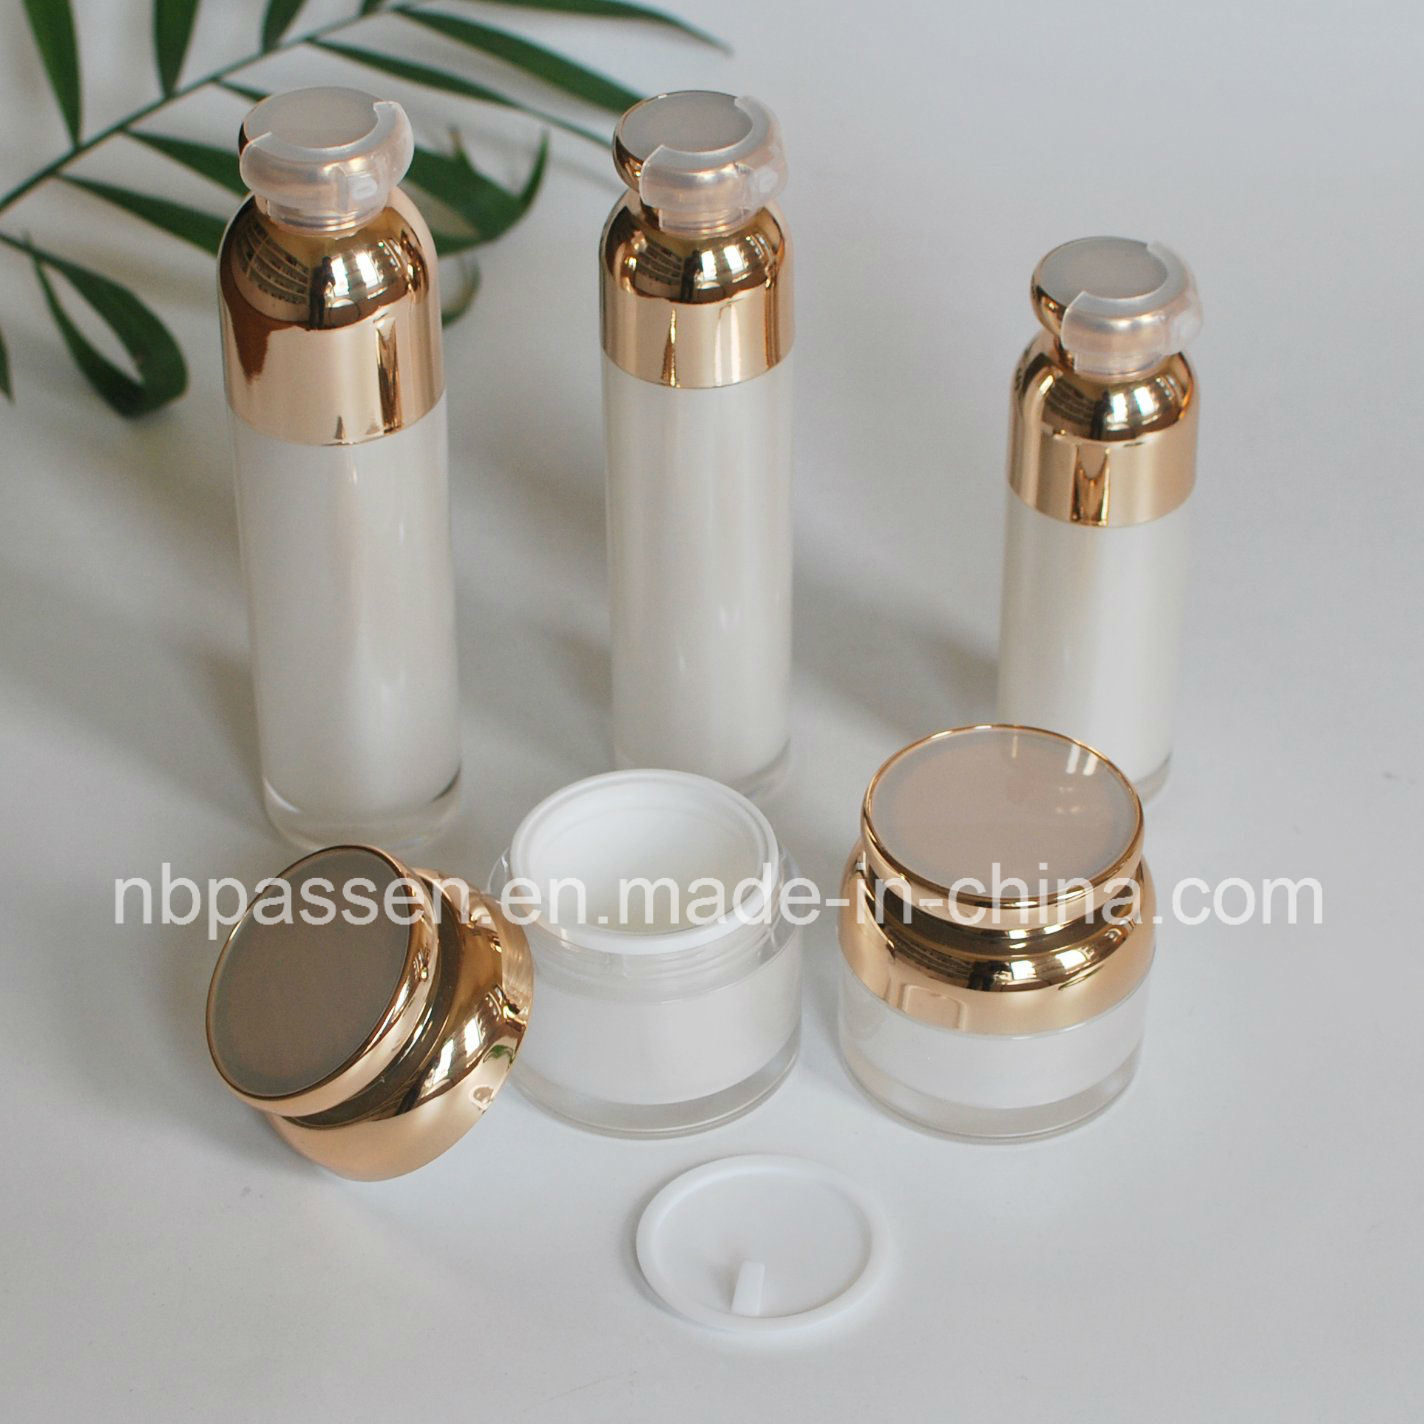 Pearl White Acrylic Cosmetics Bottle with Airless Pump (PPC-NEW-097)